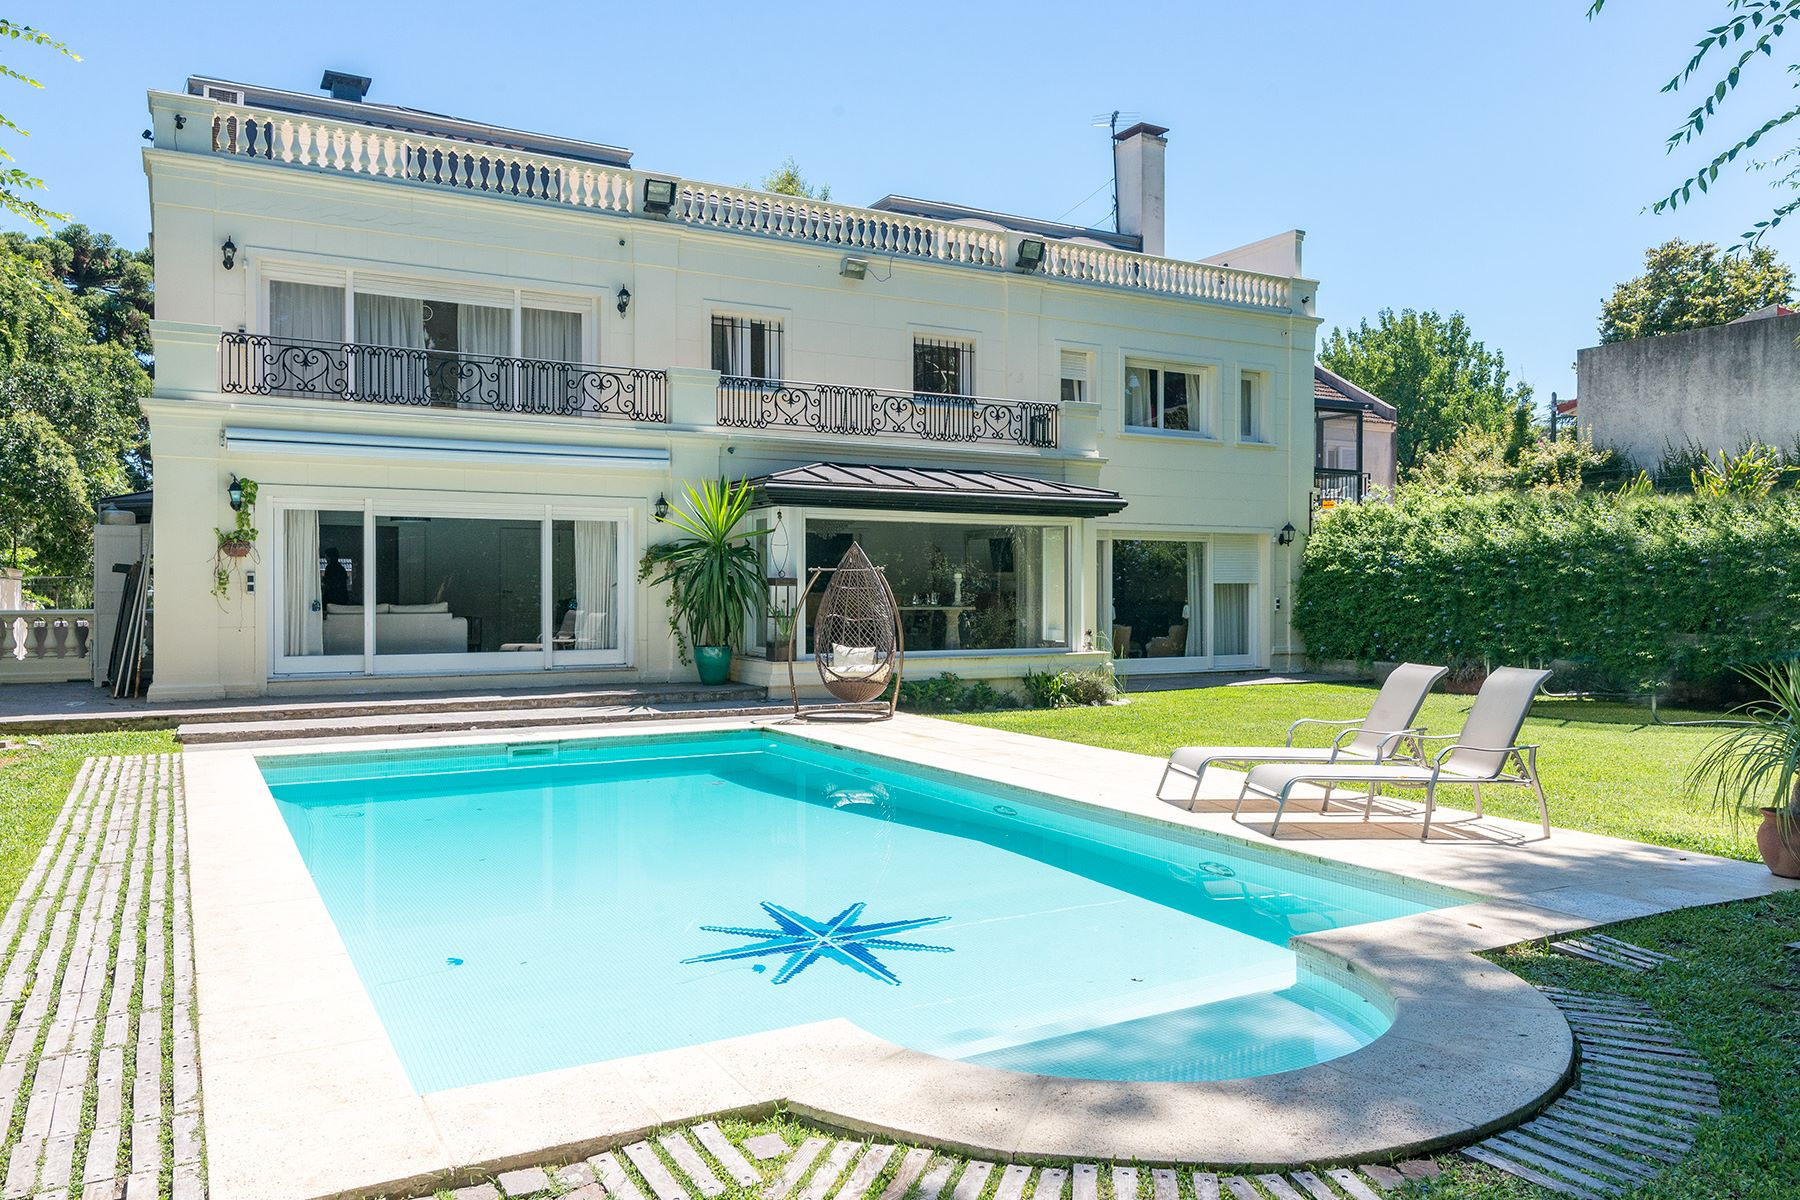 Single Family Homes for Sale at Sophisticated French Residence José Evaristo Uriburu 665 San Isidro, Buenos Aires 1640 Argentina